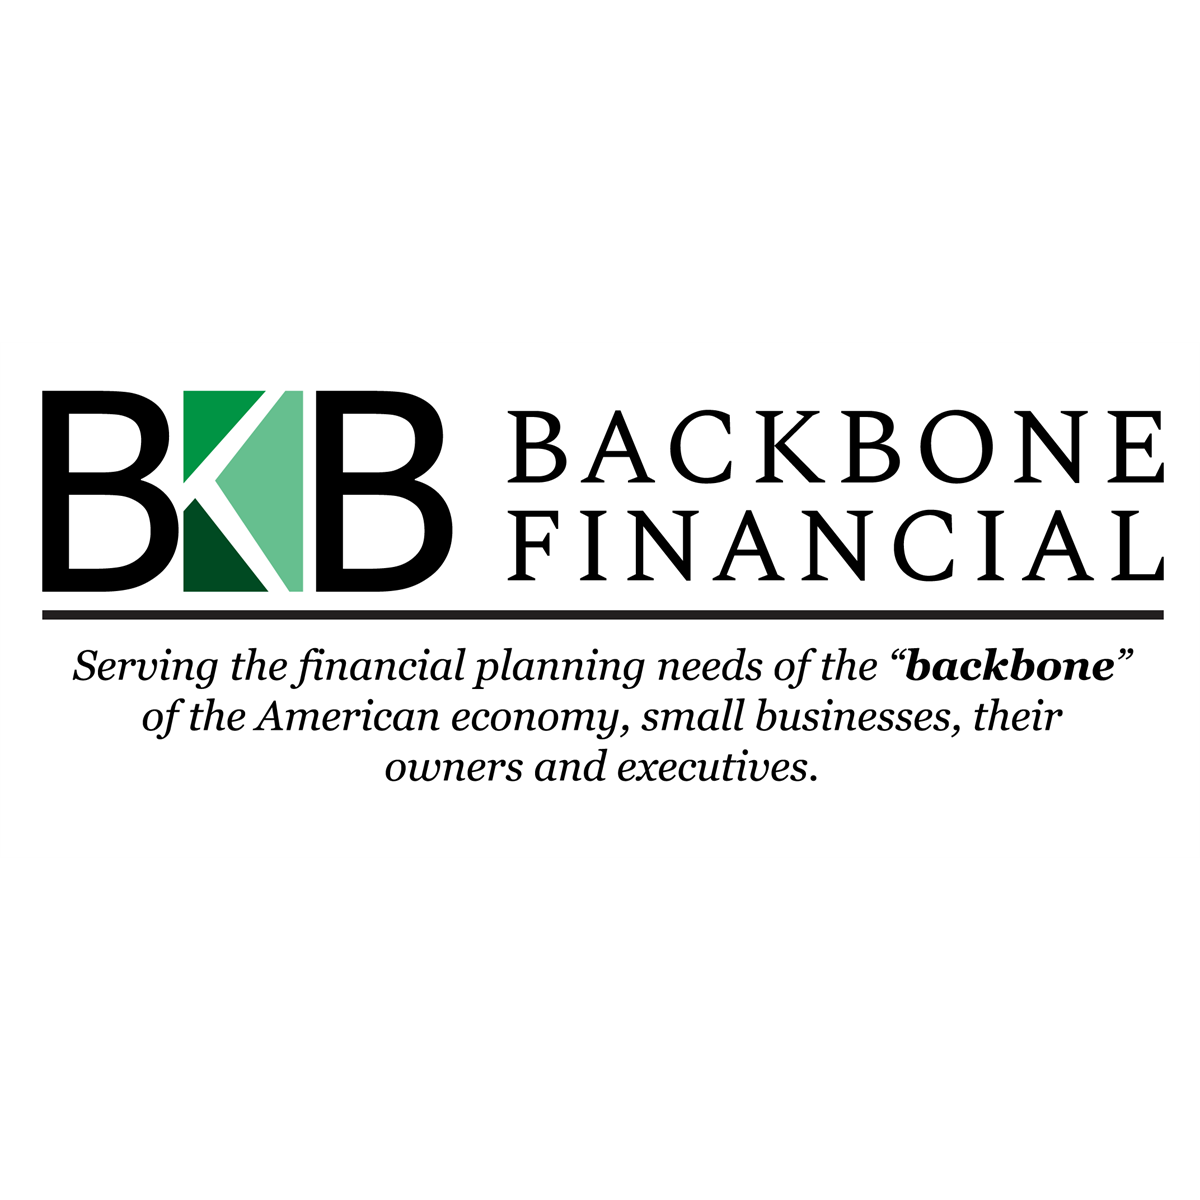 Backbone Financial